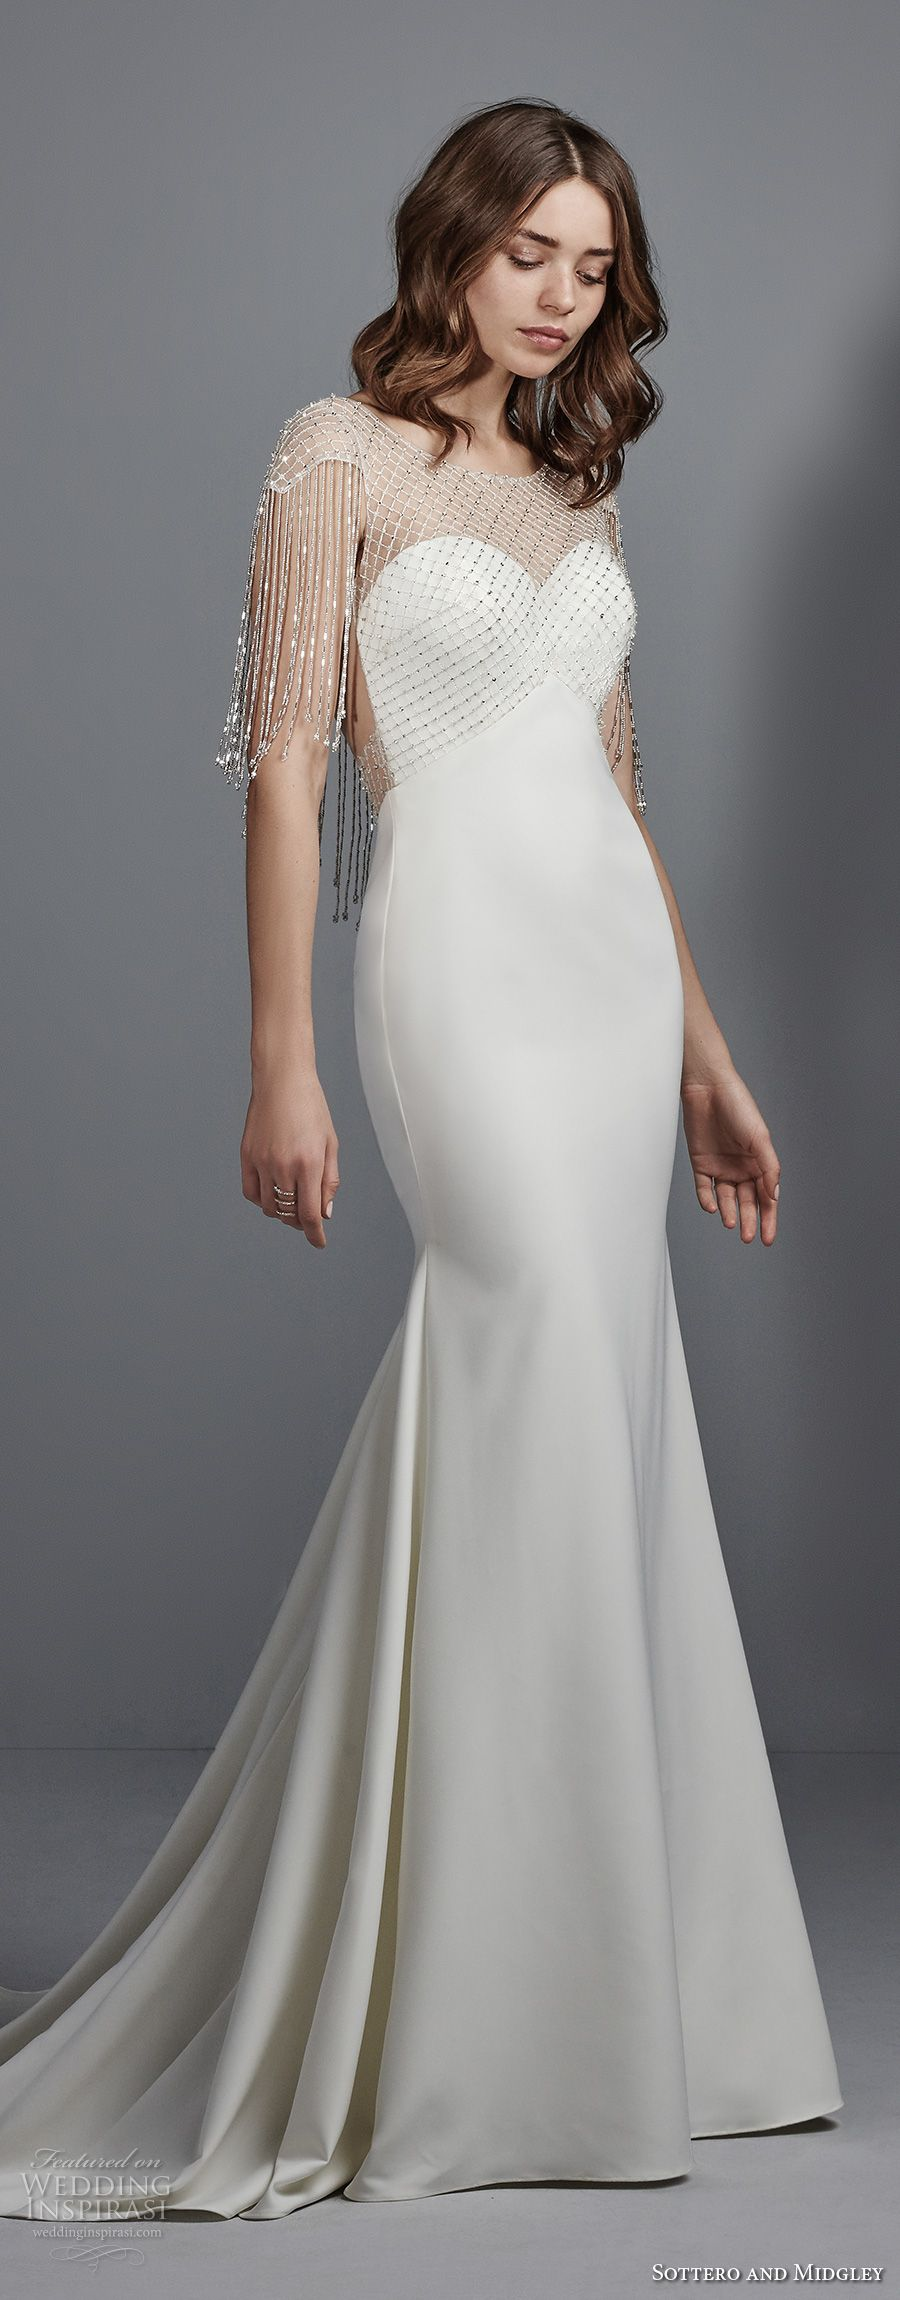 Sottero and midgley fall wedding dresses u ucgraysonud bridal